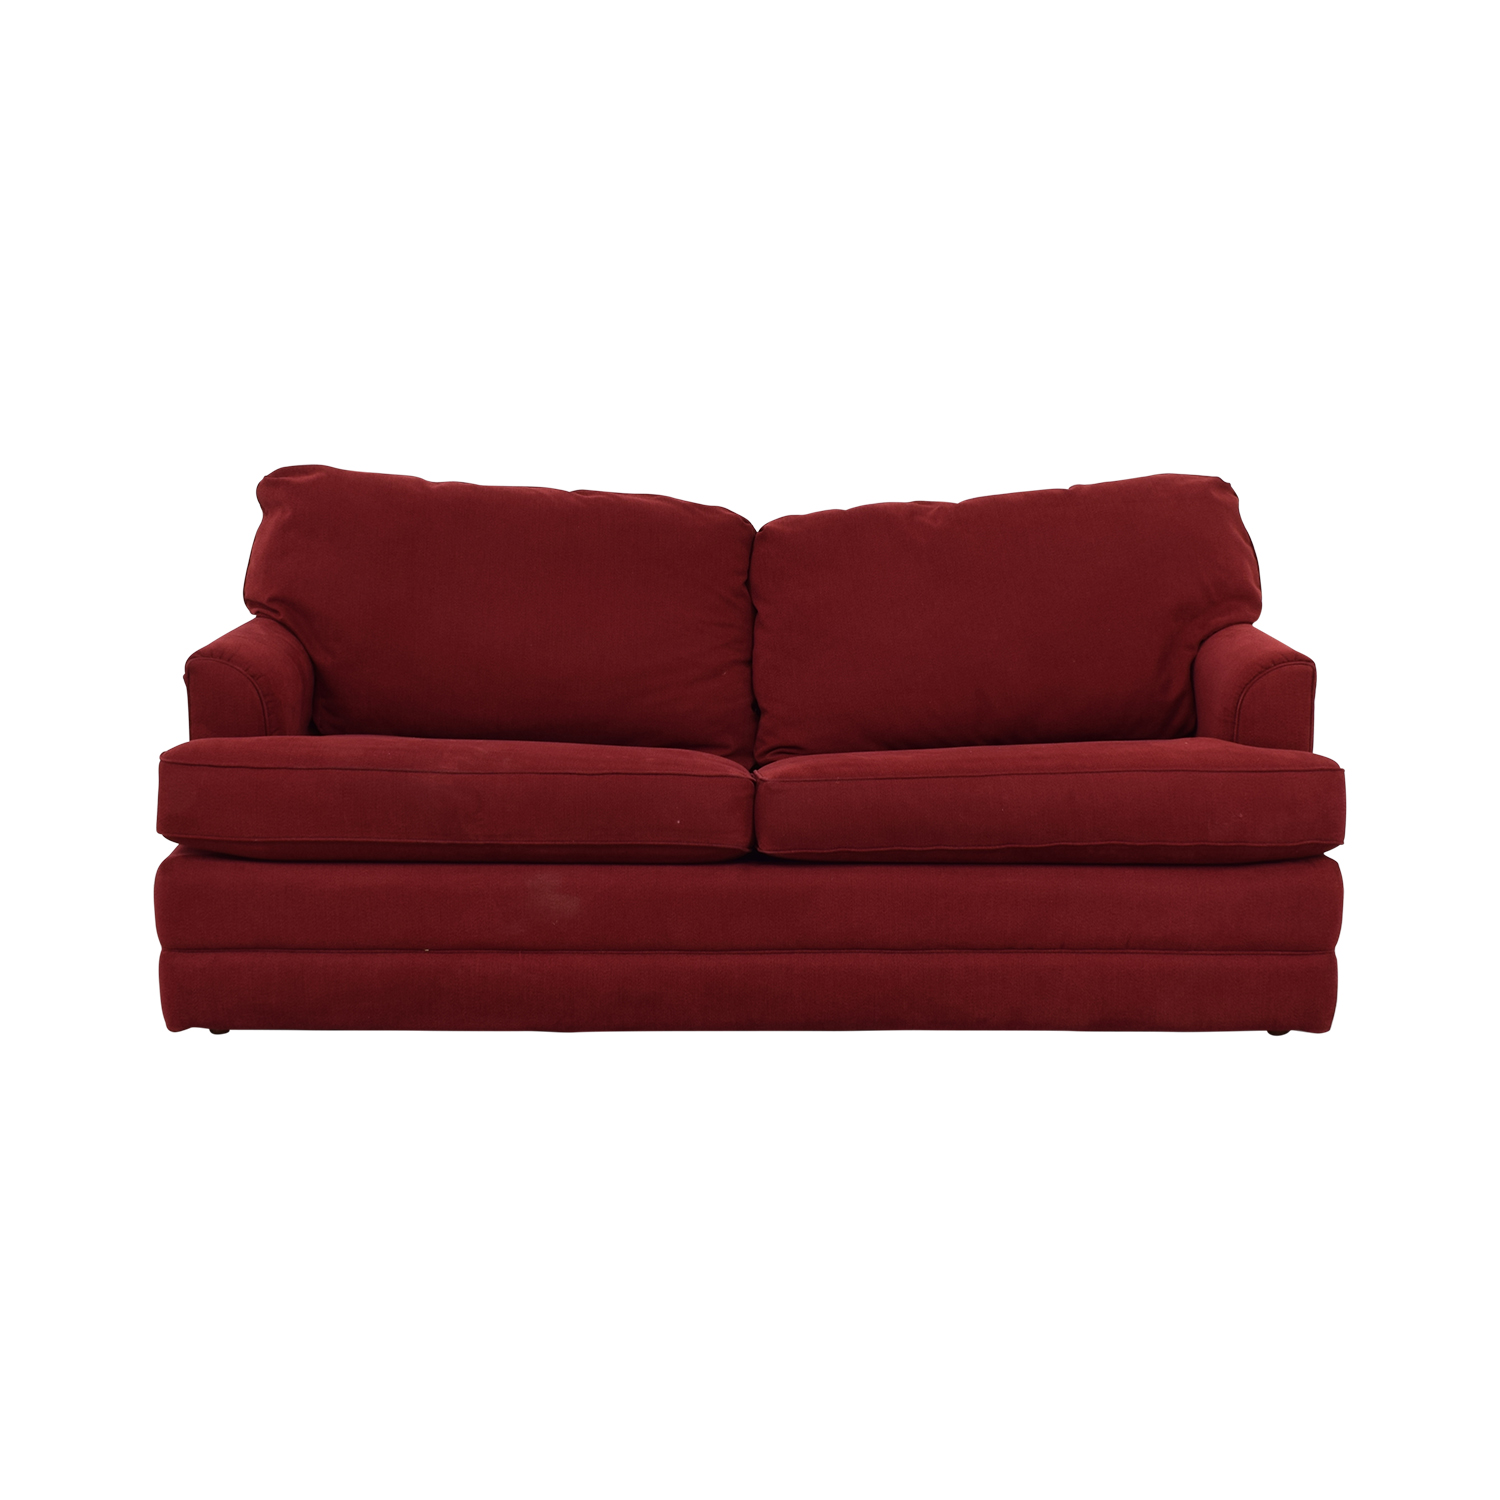 88% OFF - La-Z-Boy La-Z-Boy Red Convertible Queen Sleeper Sofa / Sofas